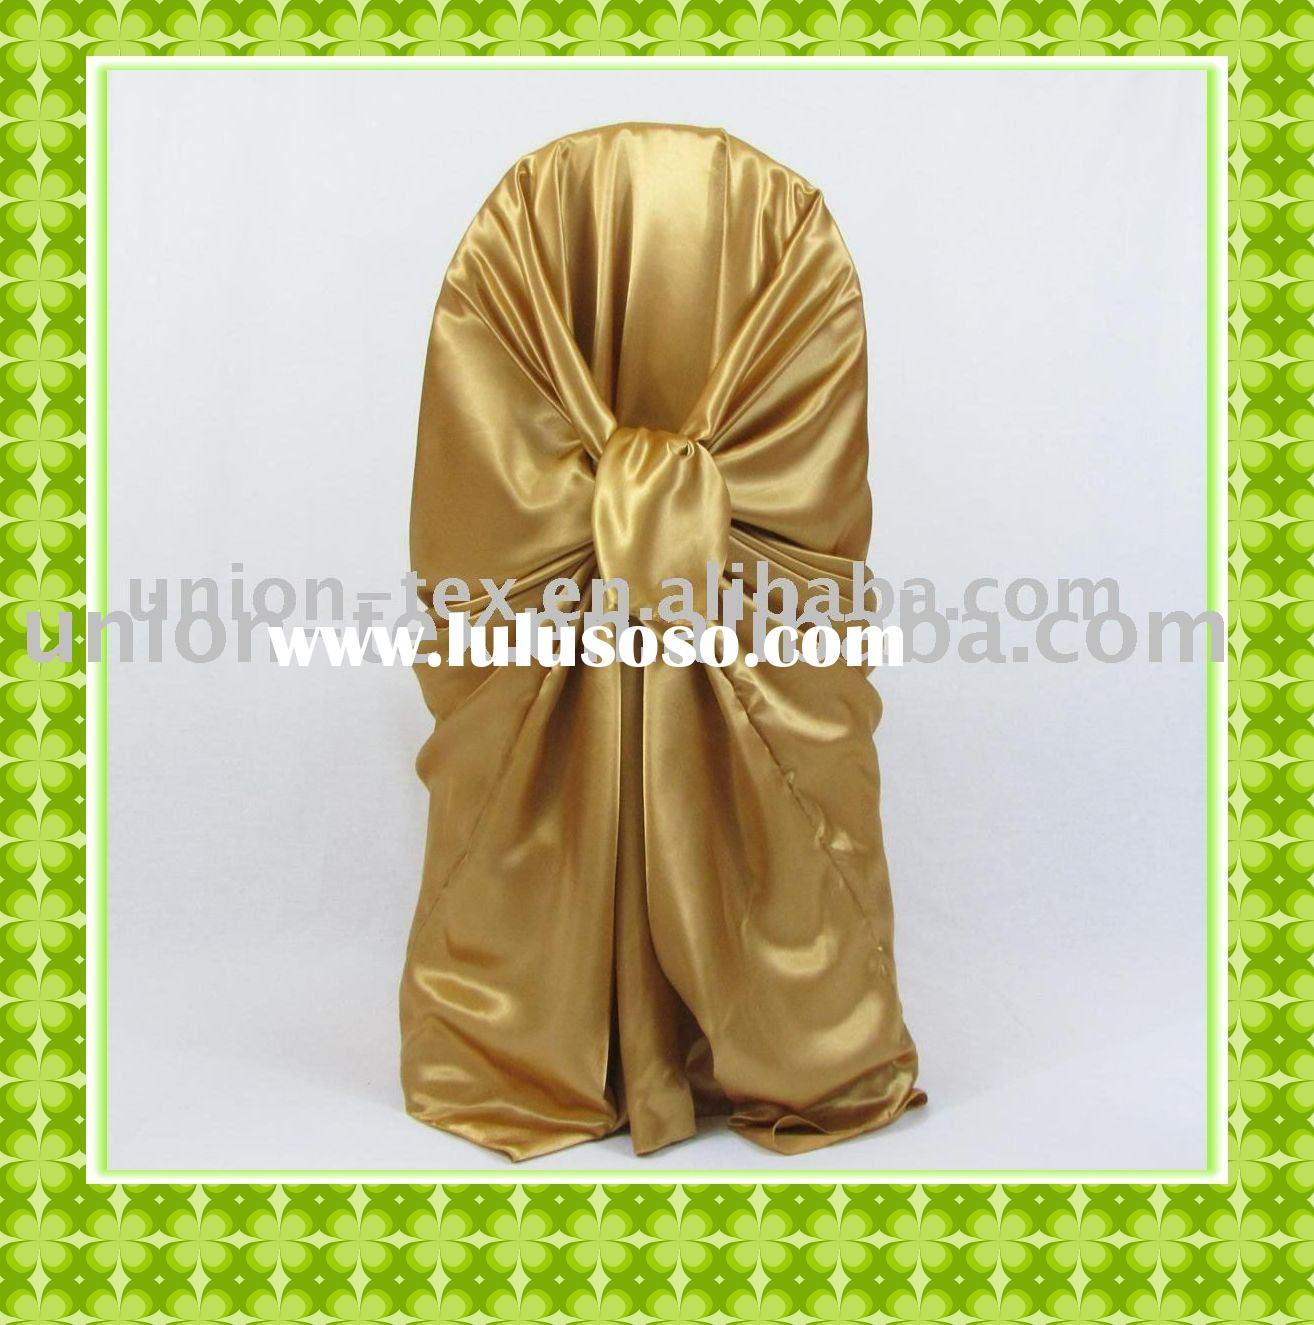 Self-tie Chair Covers/Pillowcase Chair Covers/Universal Chair Covers(UT-WU-1062701)